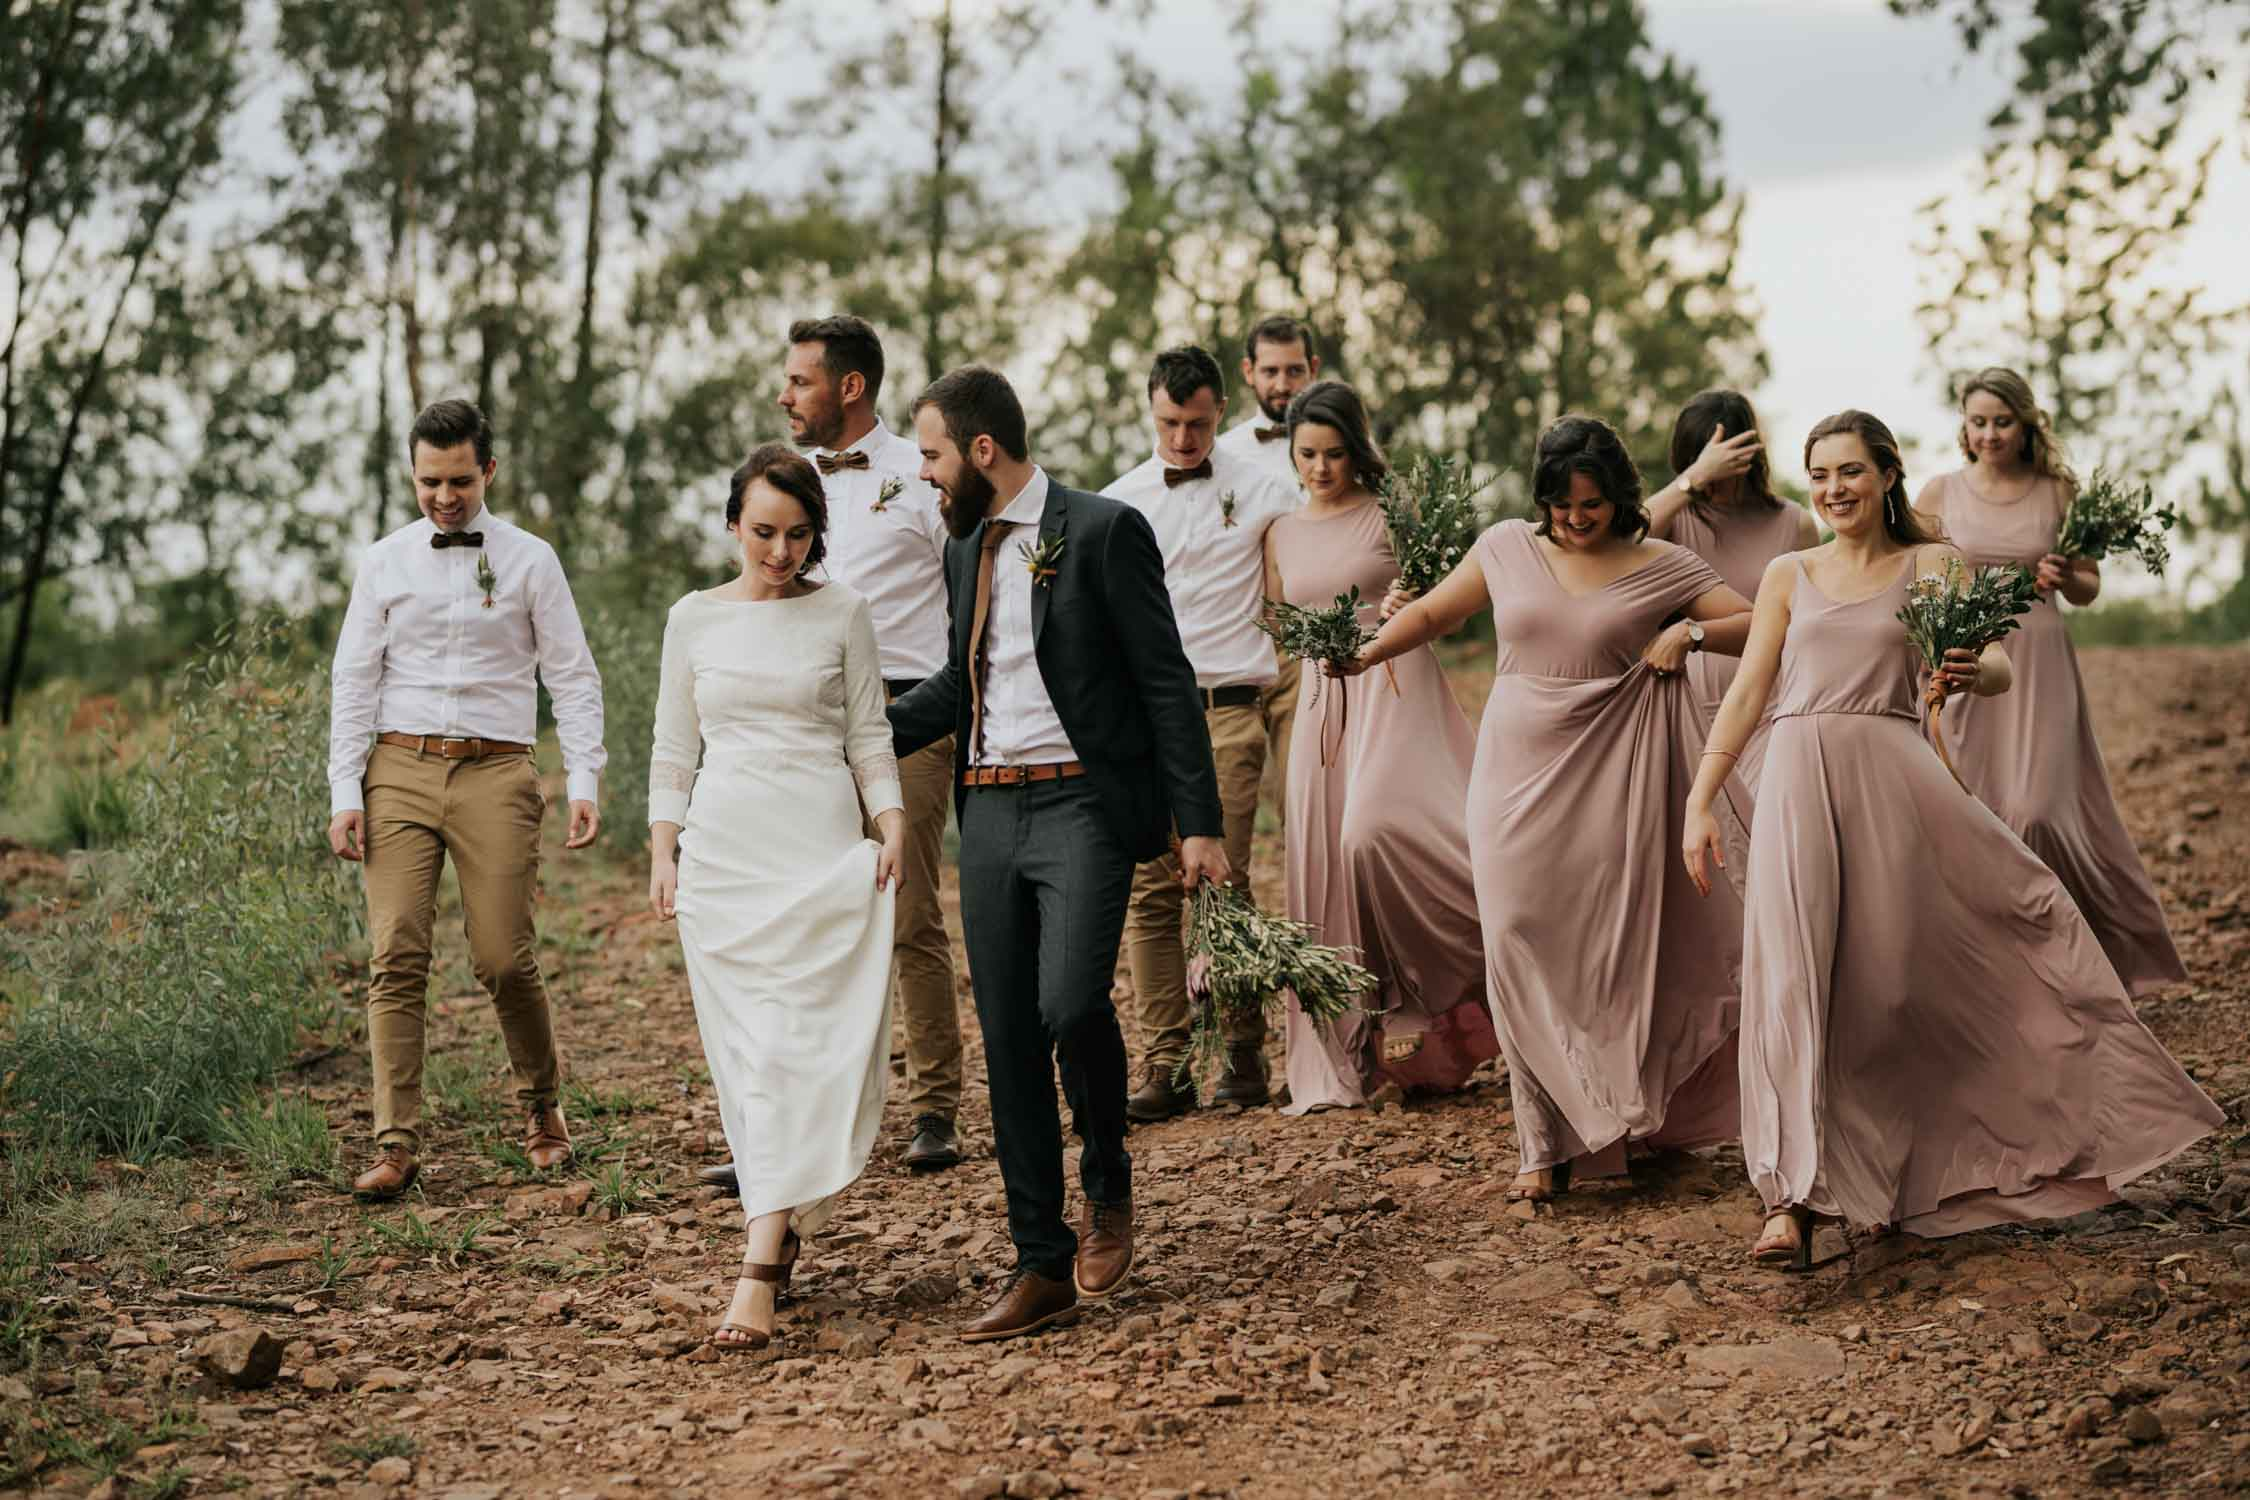 Candid bridal party portrait of the group walking together